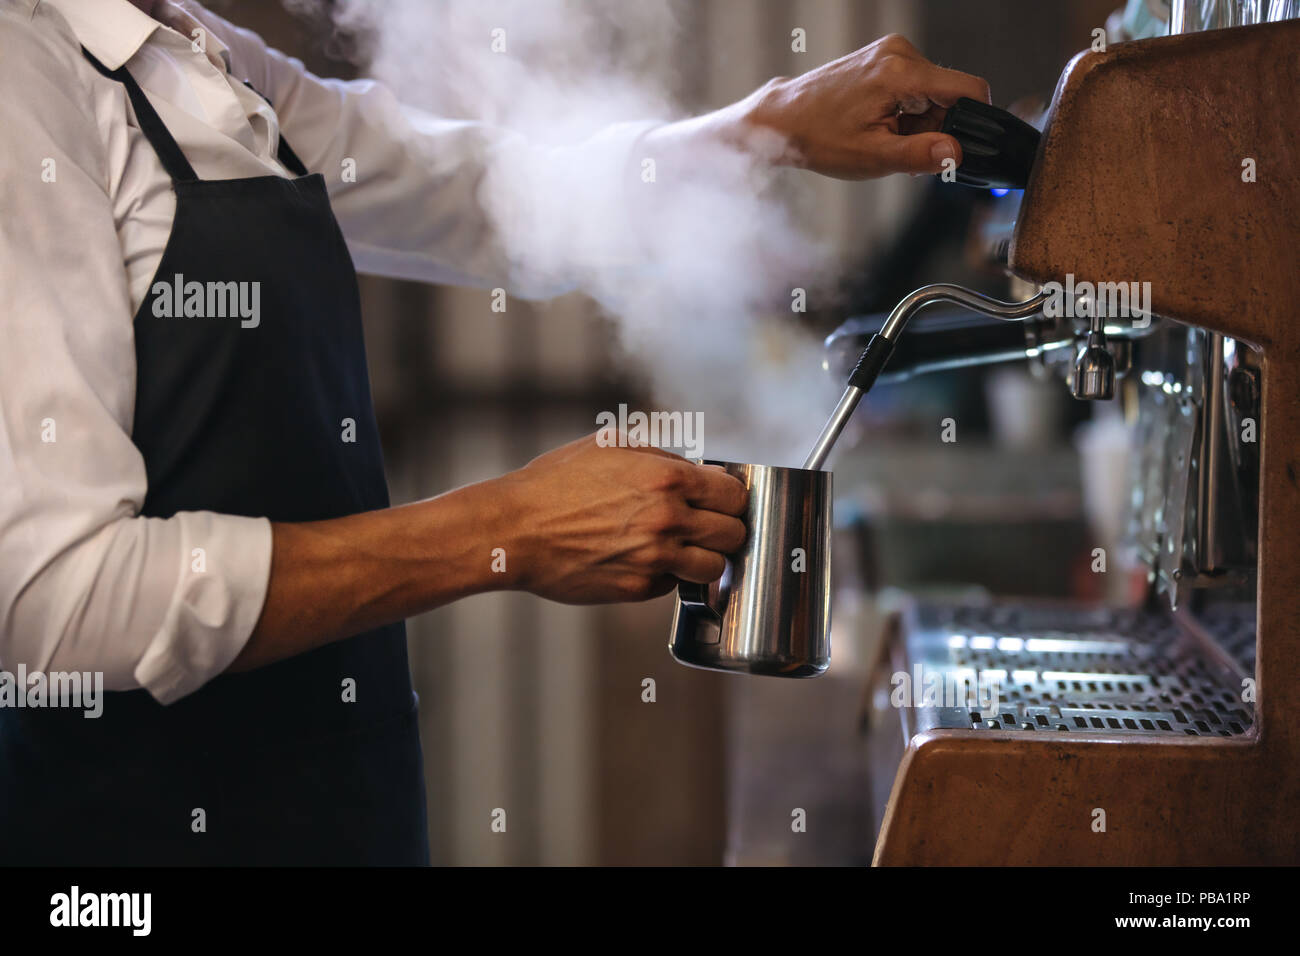 Coffee shop worker preparing coffee on steam espresso coffee machine. Cropped shot of man working in coffee shop wearing an apron. - Stock Image